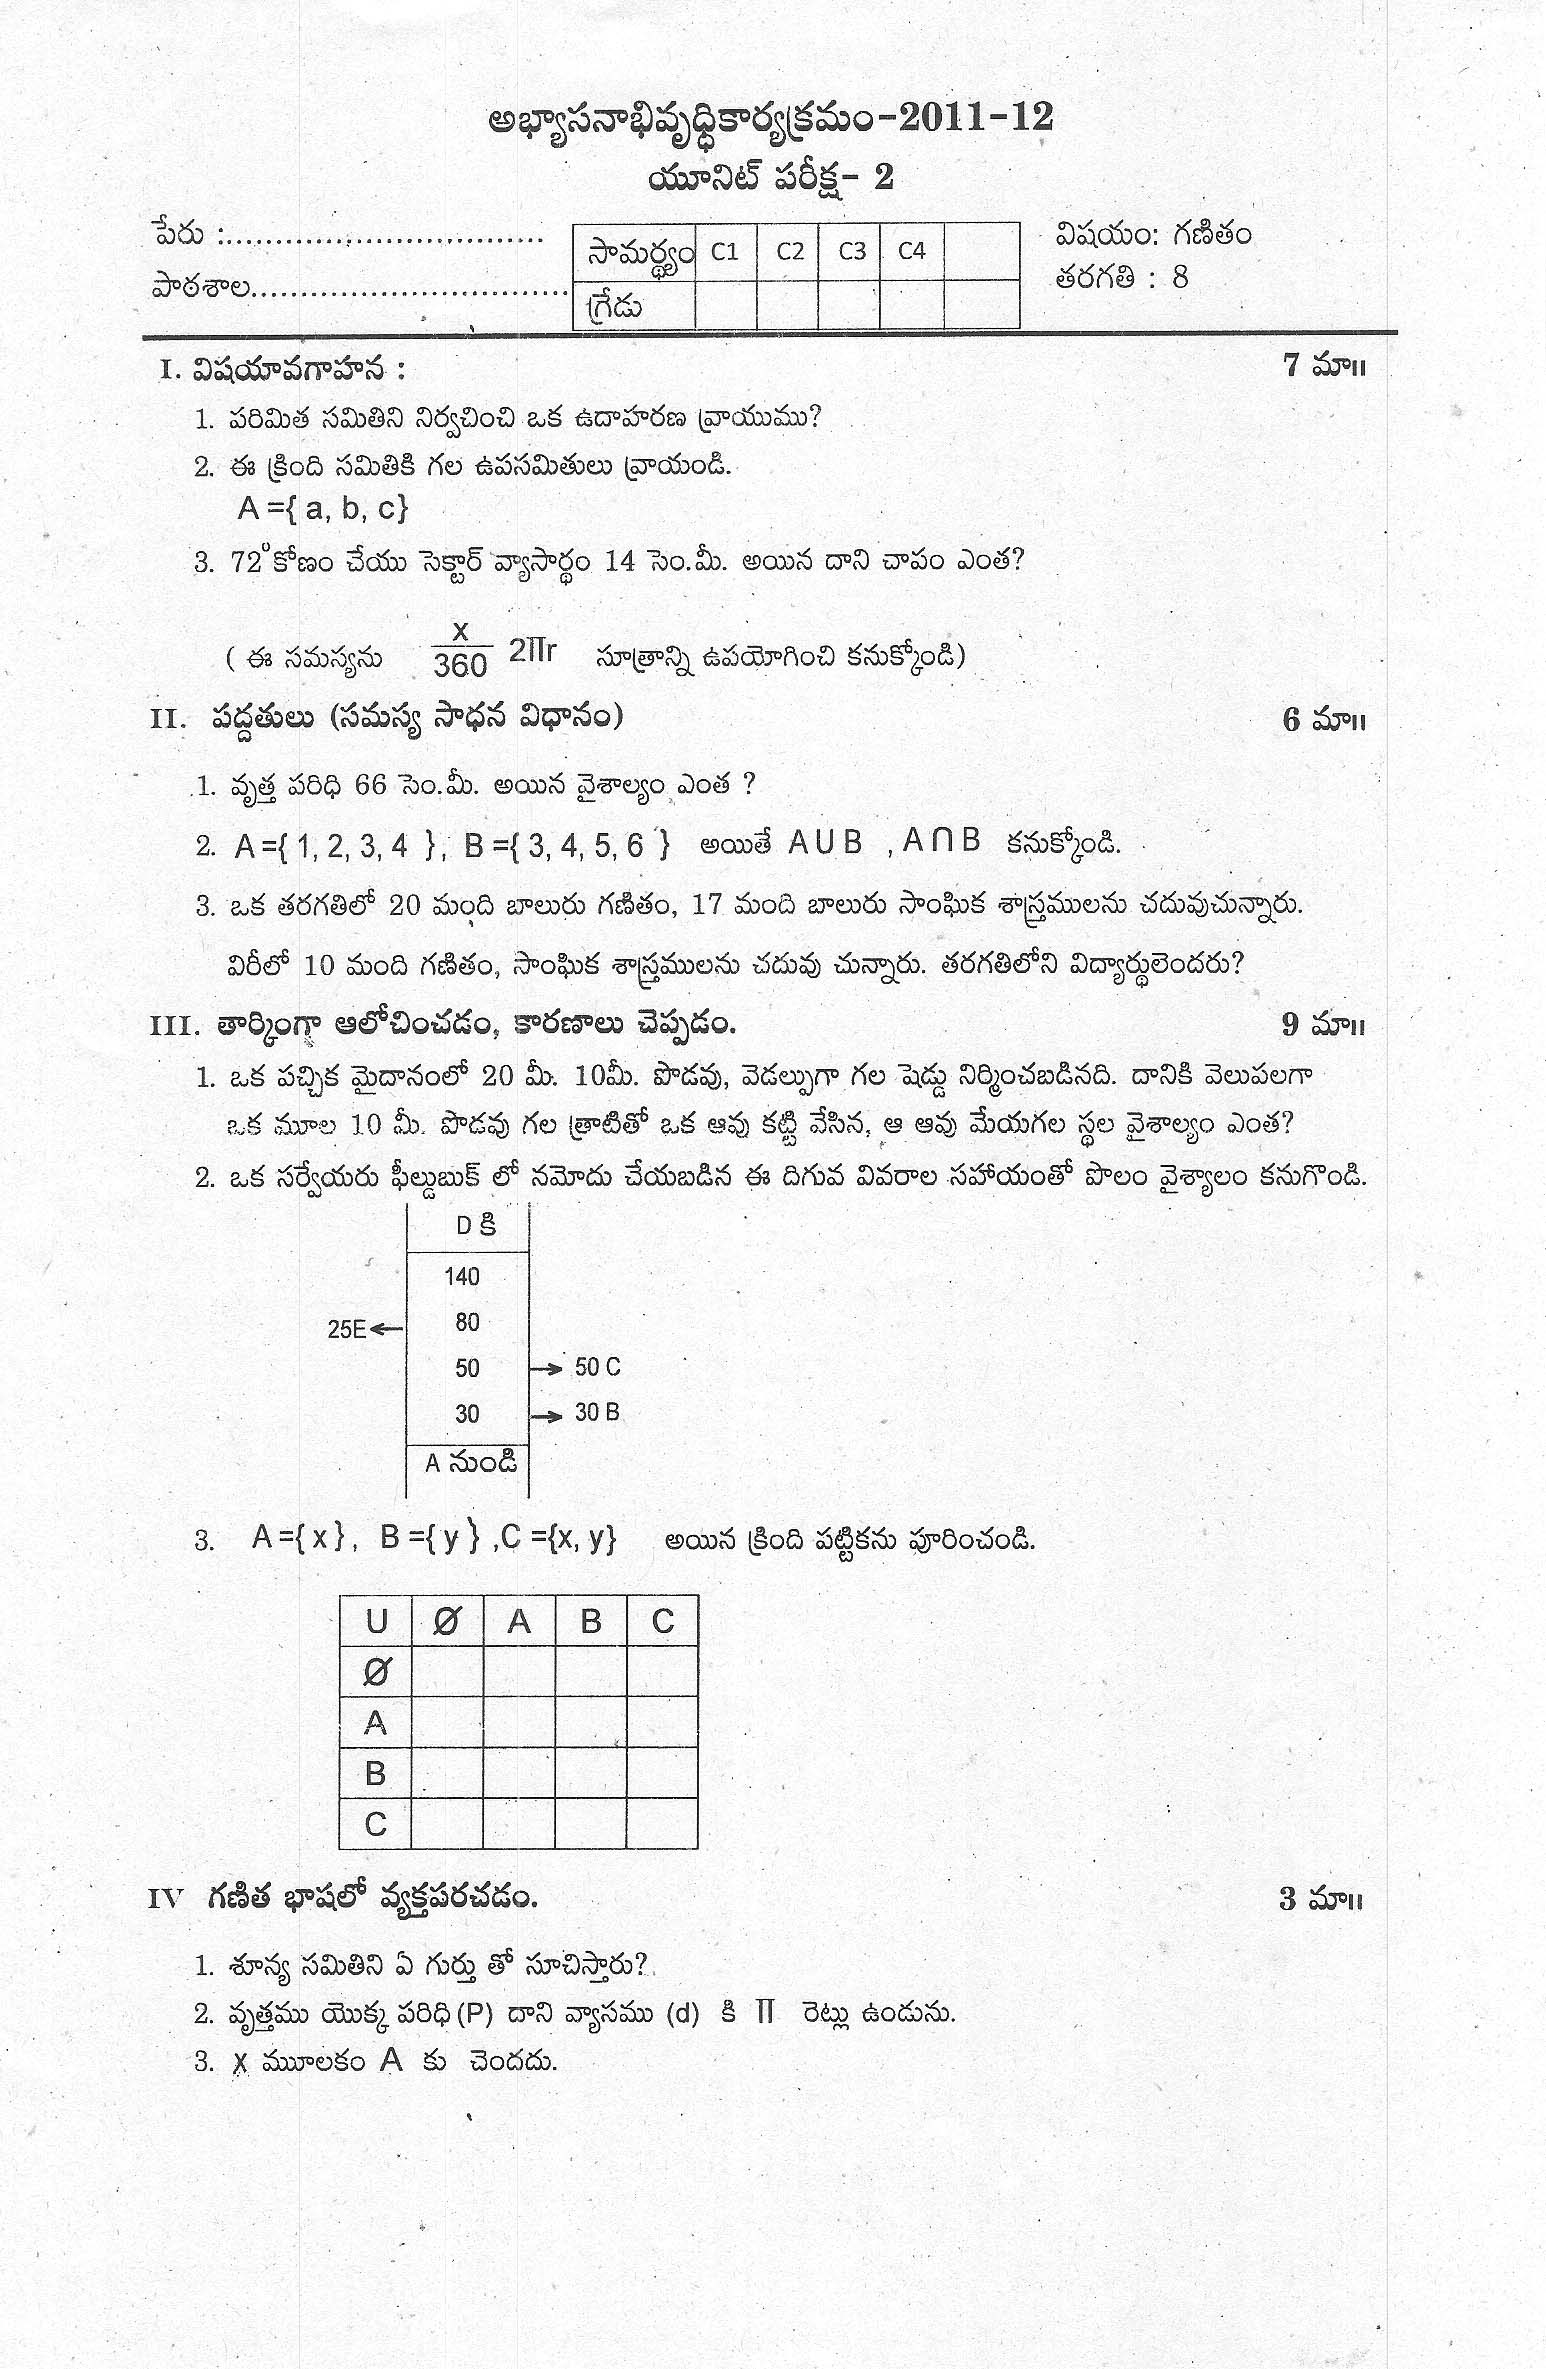 math level subjects in college tarm paper